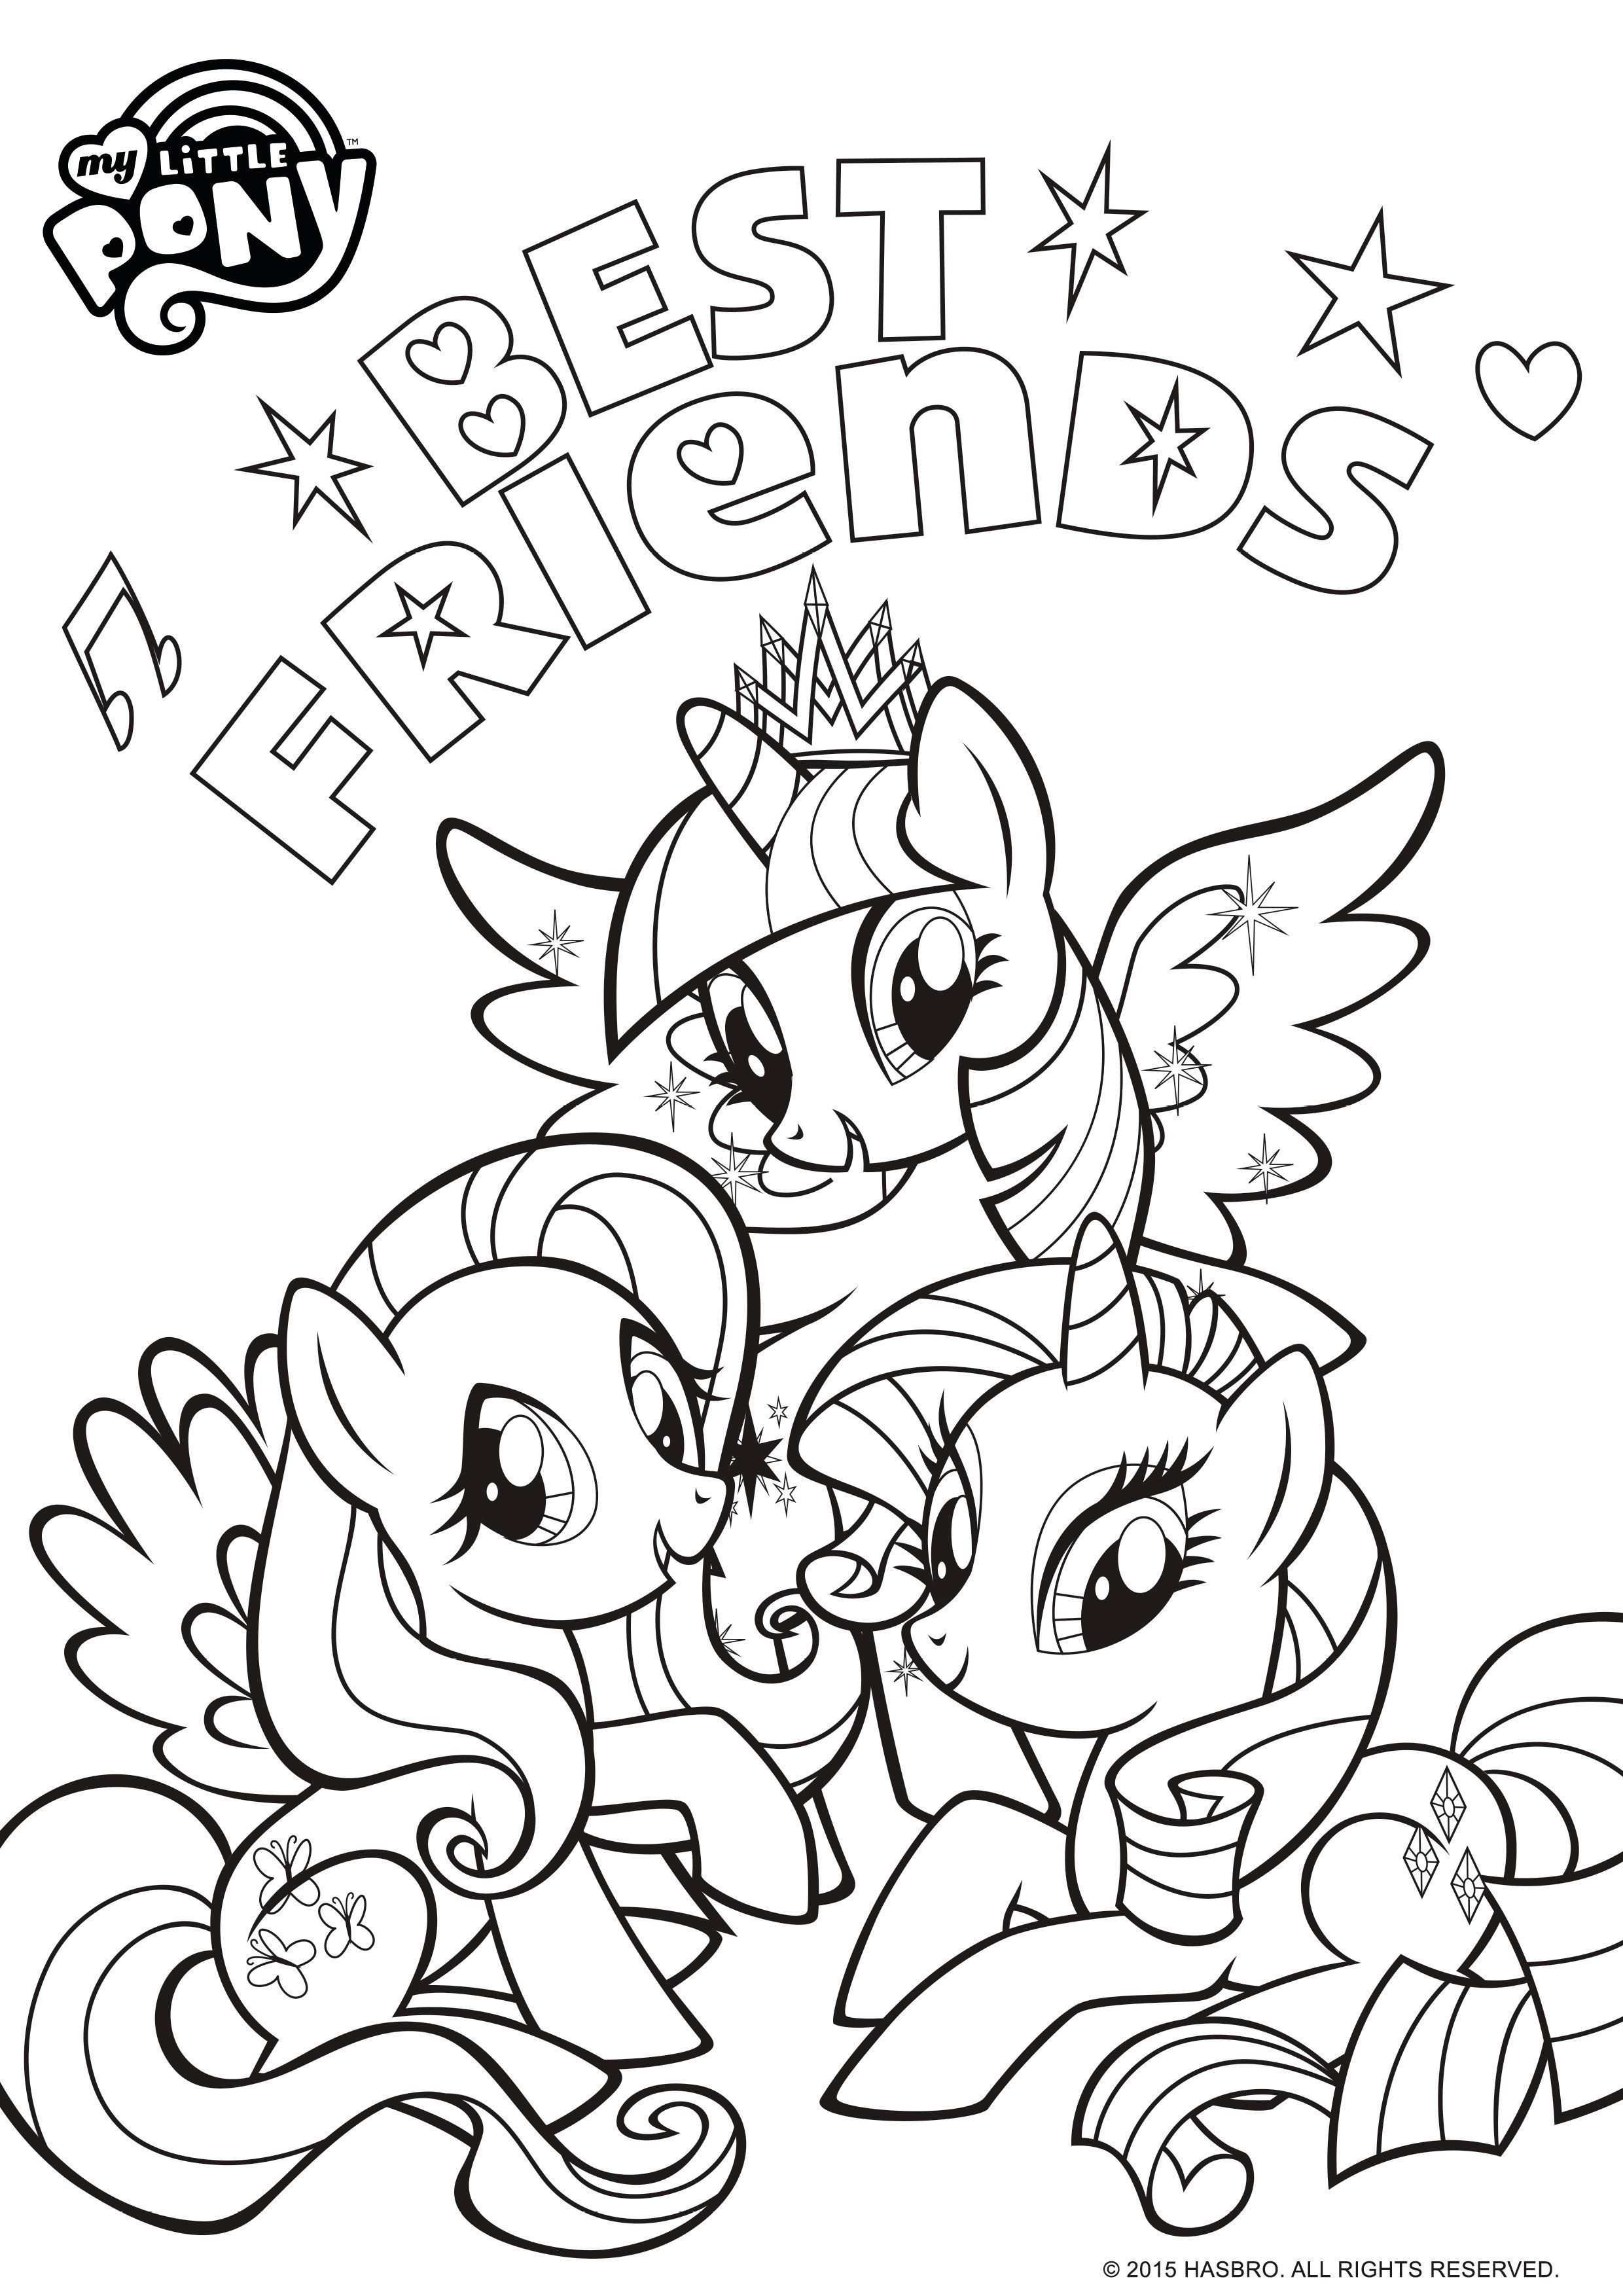 Einzigartig Malvorlagen My Little Pony My Little Pony Coloring Cartoon Coloring Pages Cute Coloring Pages